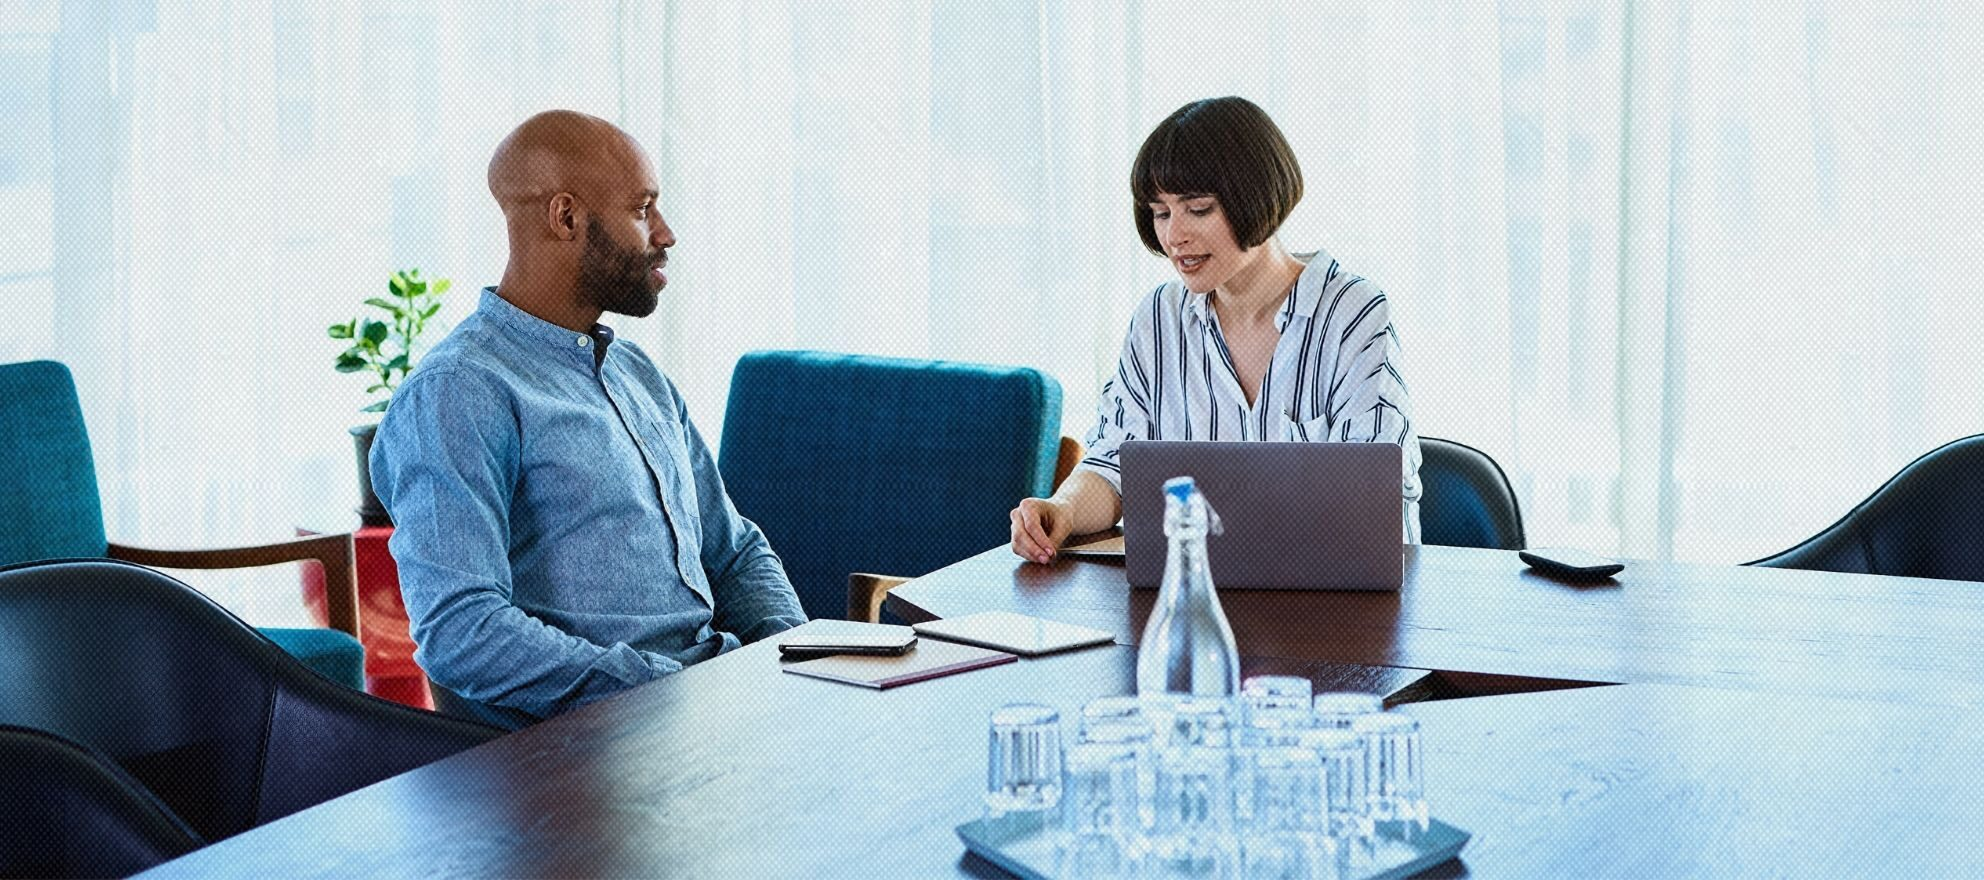 9 questions brokers should ask every agent they interview